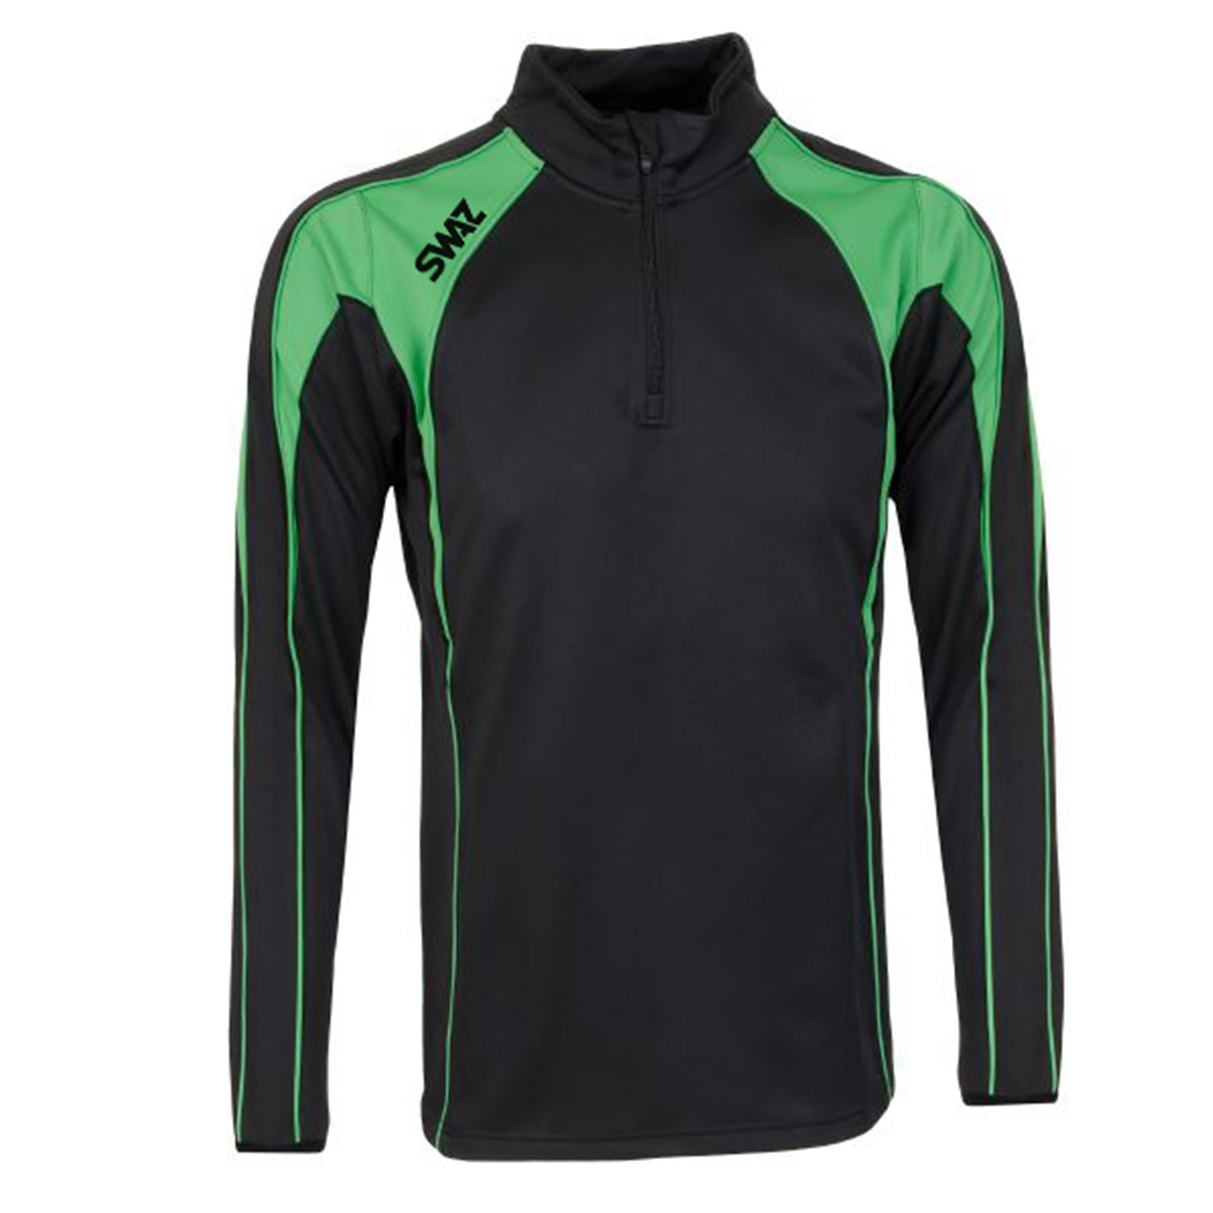 SWAZ Premier 1/4 Zip Midlayer Top – Black/Green